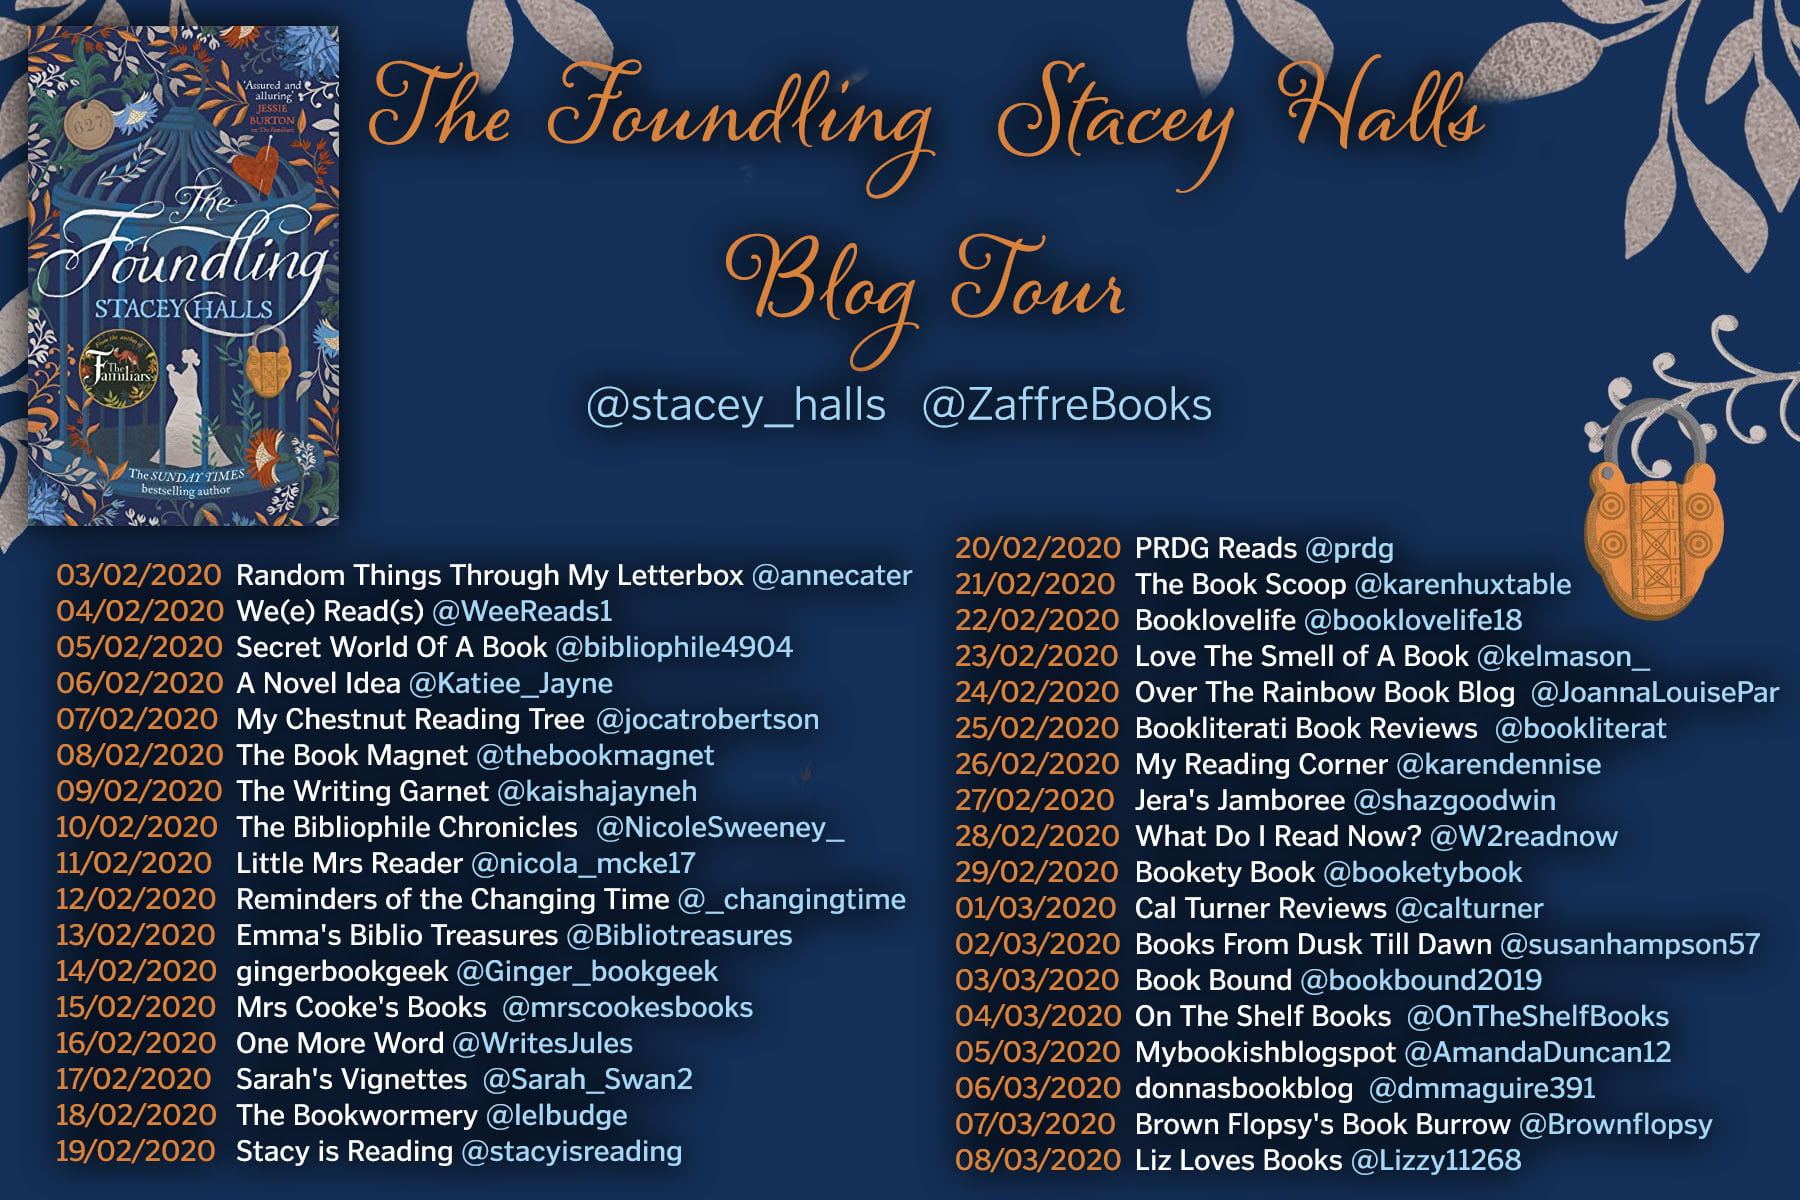 The Foundling – Stacey Halls